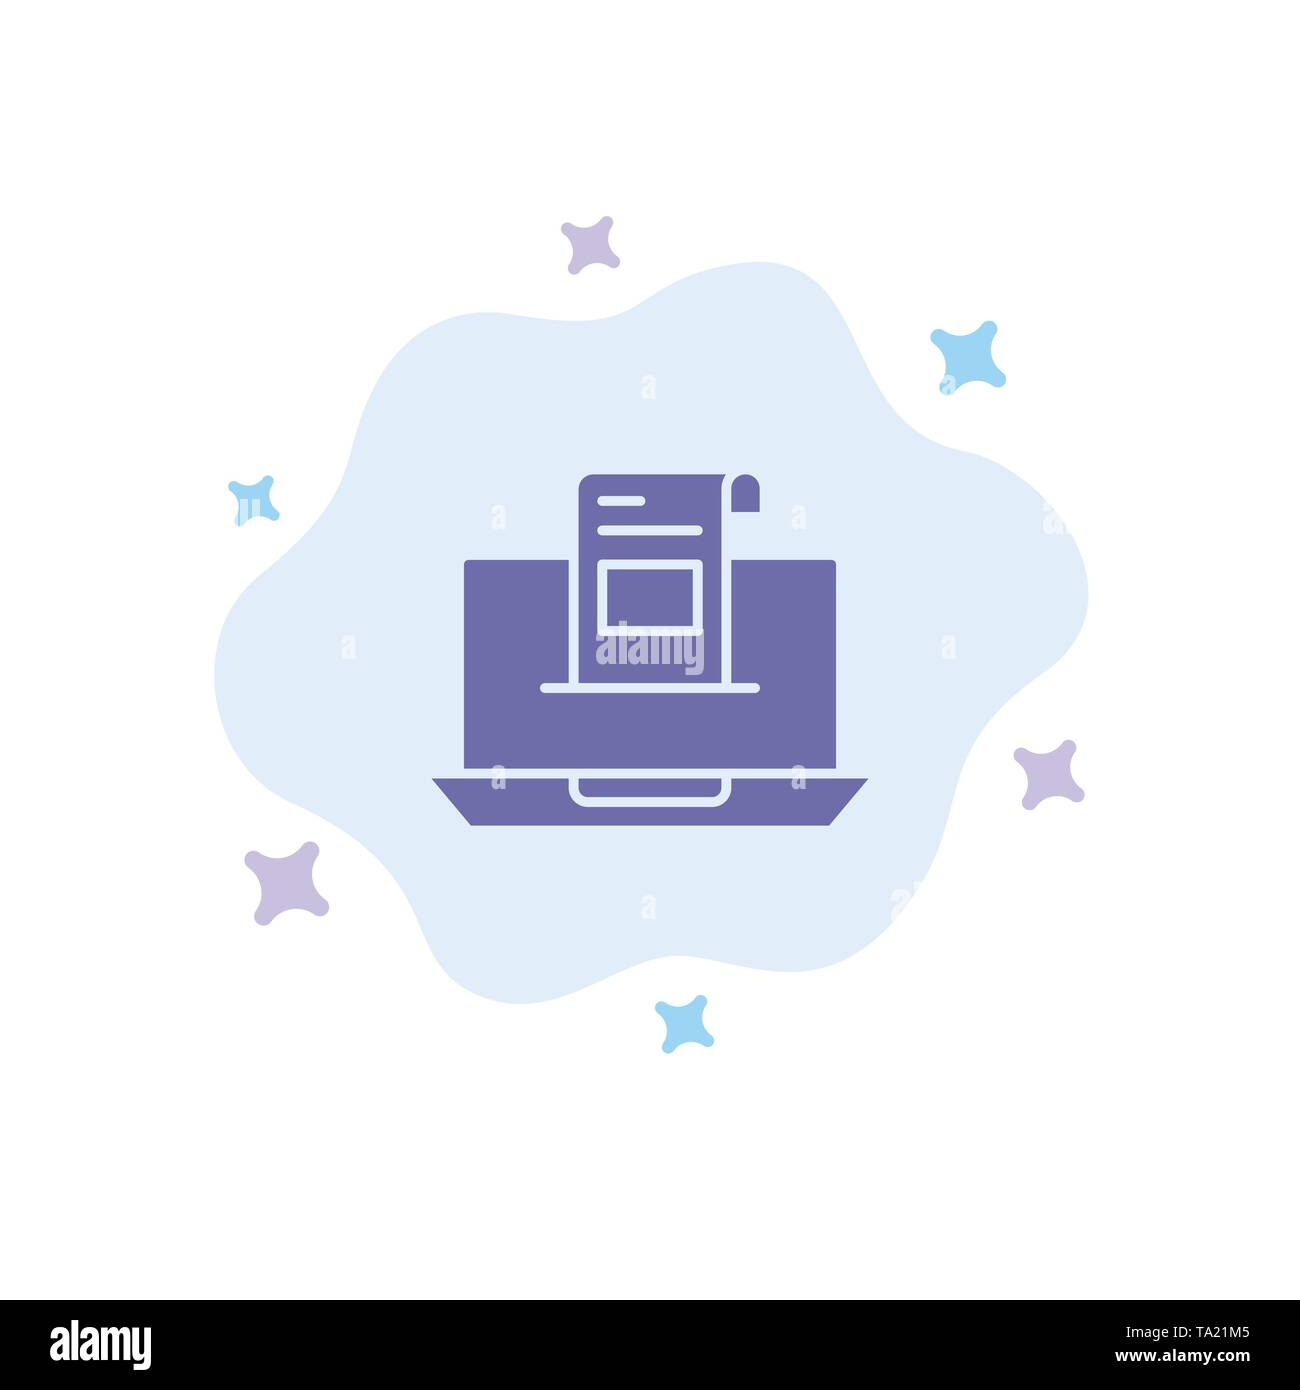 Email, Communication, Emails, Envelope, Letter, Mail, Message Blue Icon on Abstract Cloud Background - Stock Image